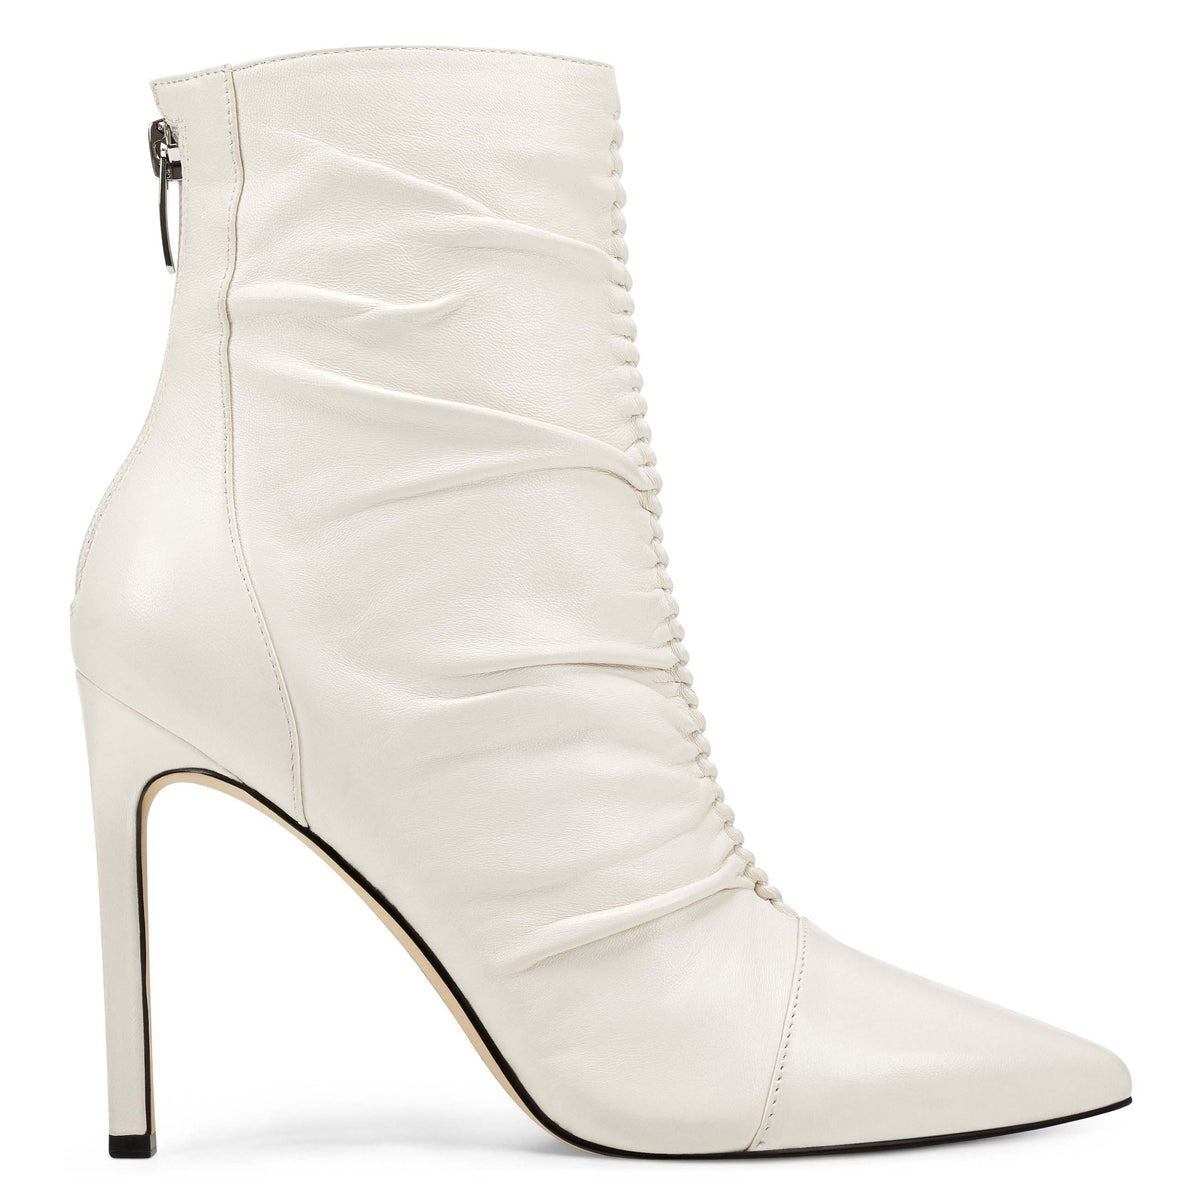 Tiaa dress bootie